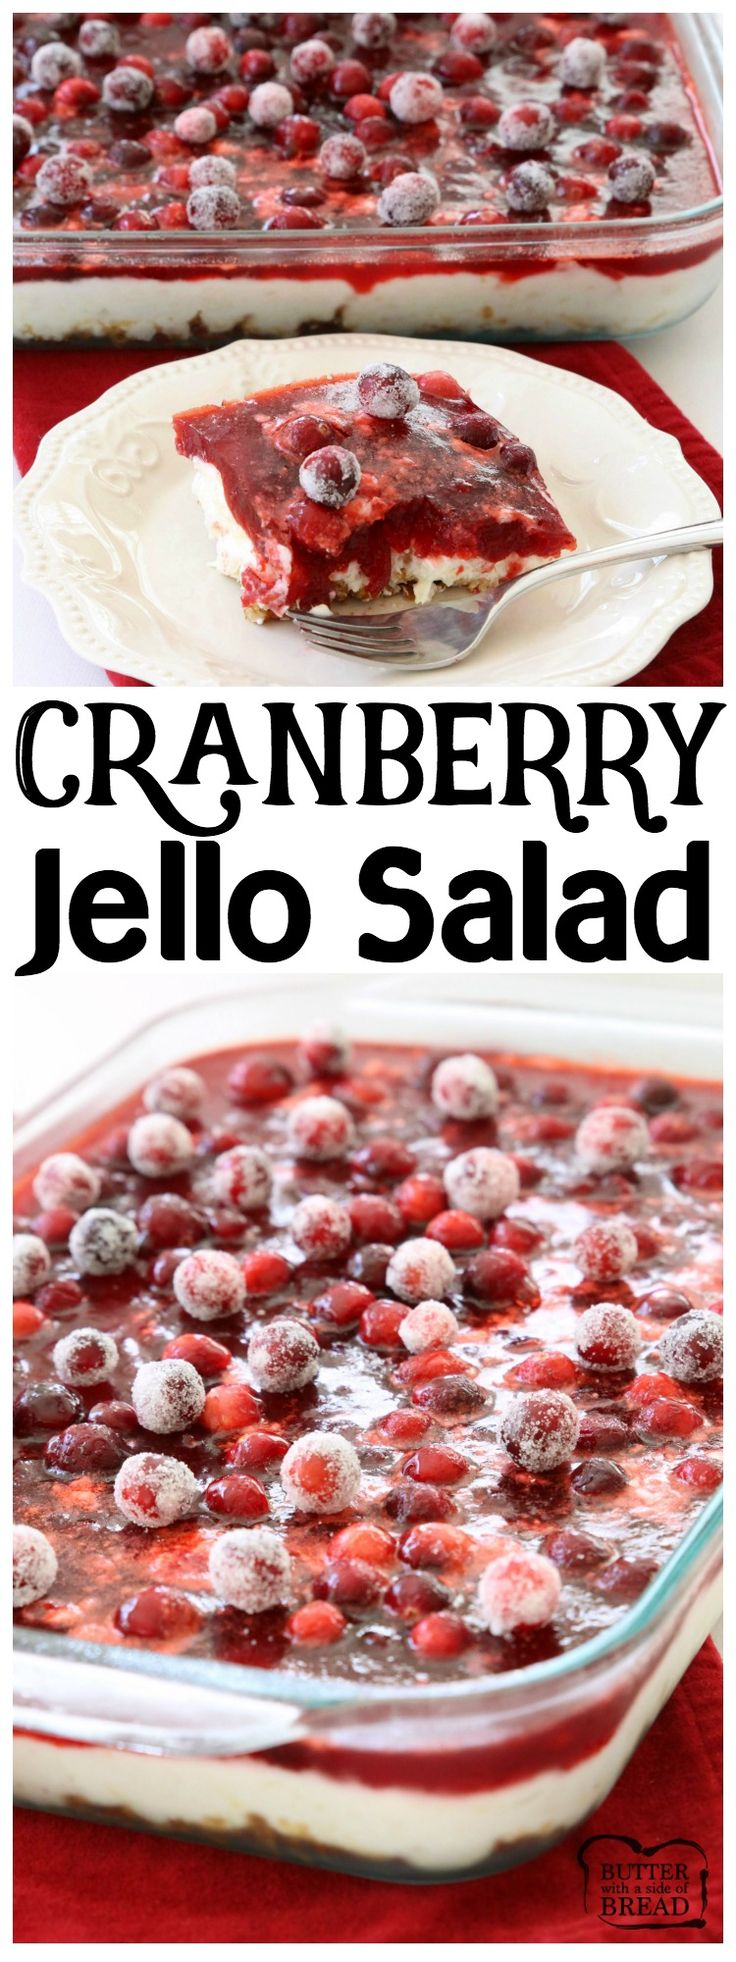 Cranberry Jello Salad made with 3 festive, delicious layers of pretzels, pudding, cranberries & Jello!